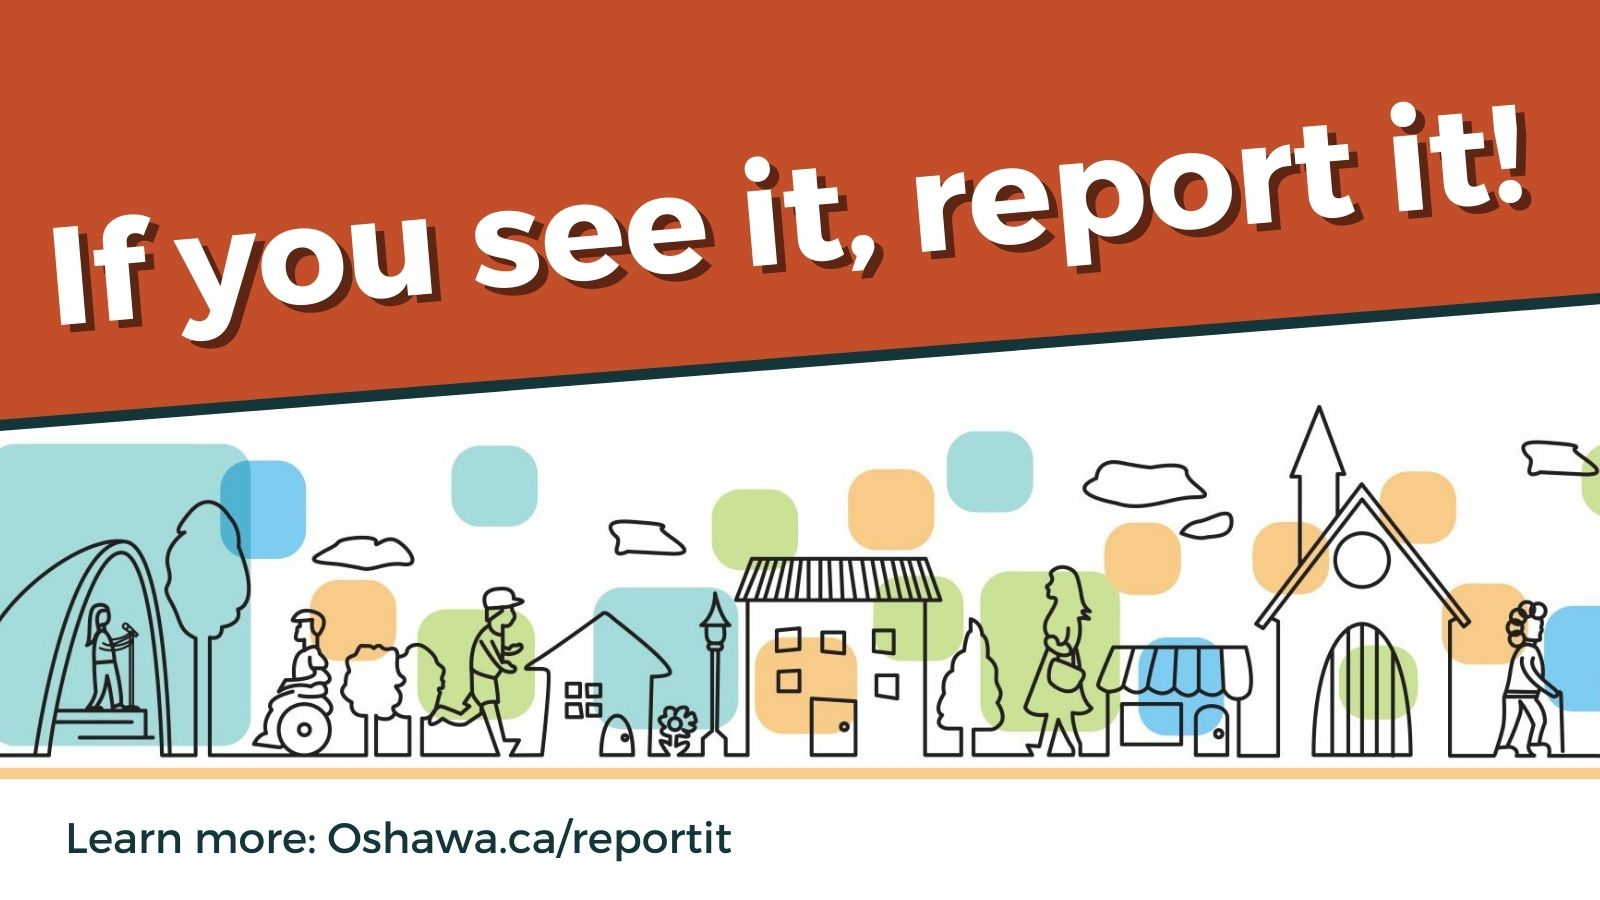 If you see it, report it